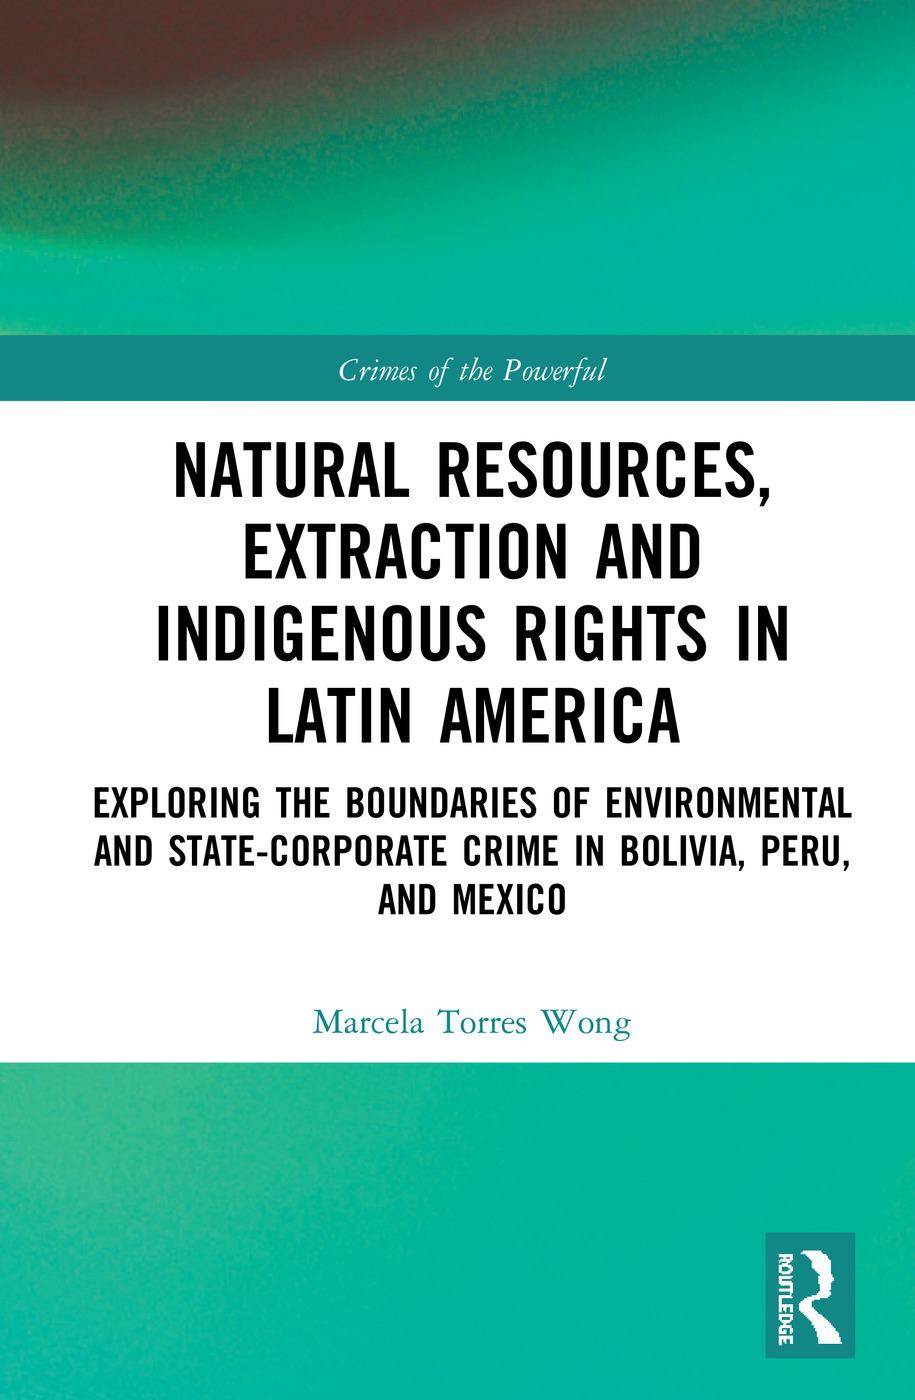 Natural Resources, Extraction and Indigenous Rights in Latin America: Exploring the Boundaries of Environmental and State-Corporate Crime in Bolivia, Peru, and Mexico book cover